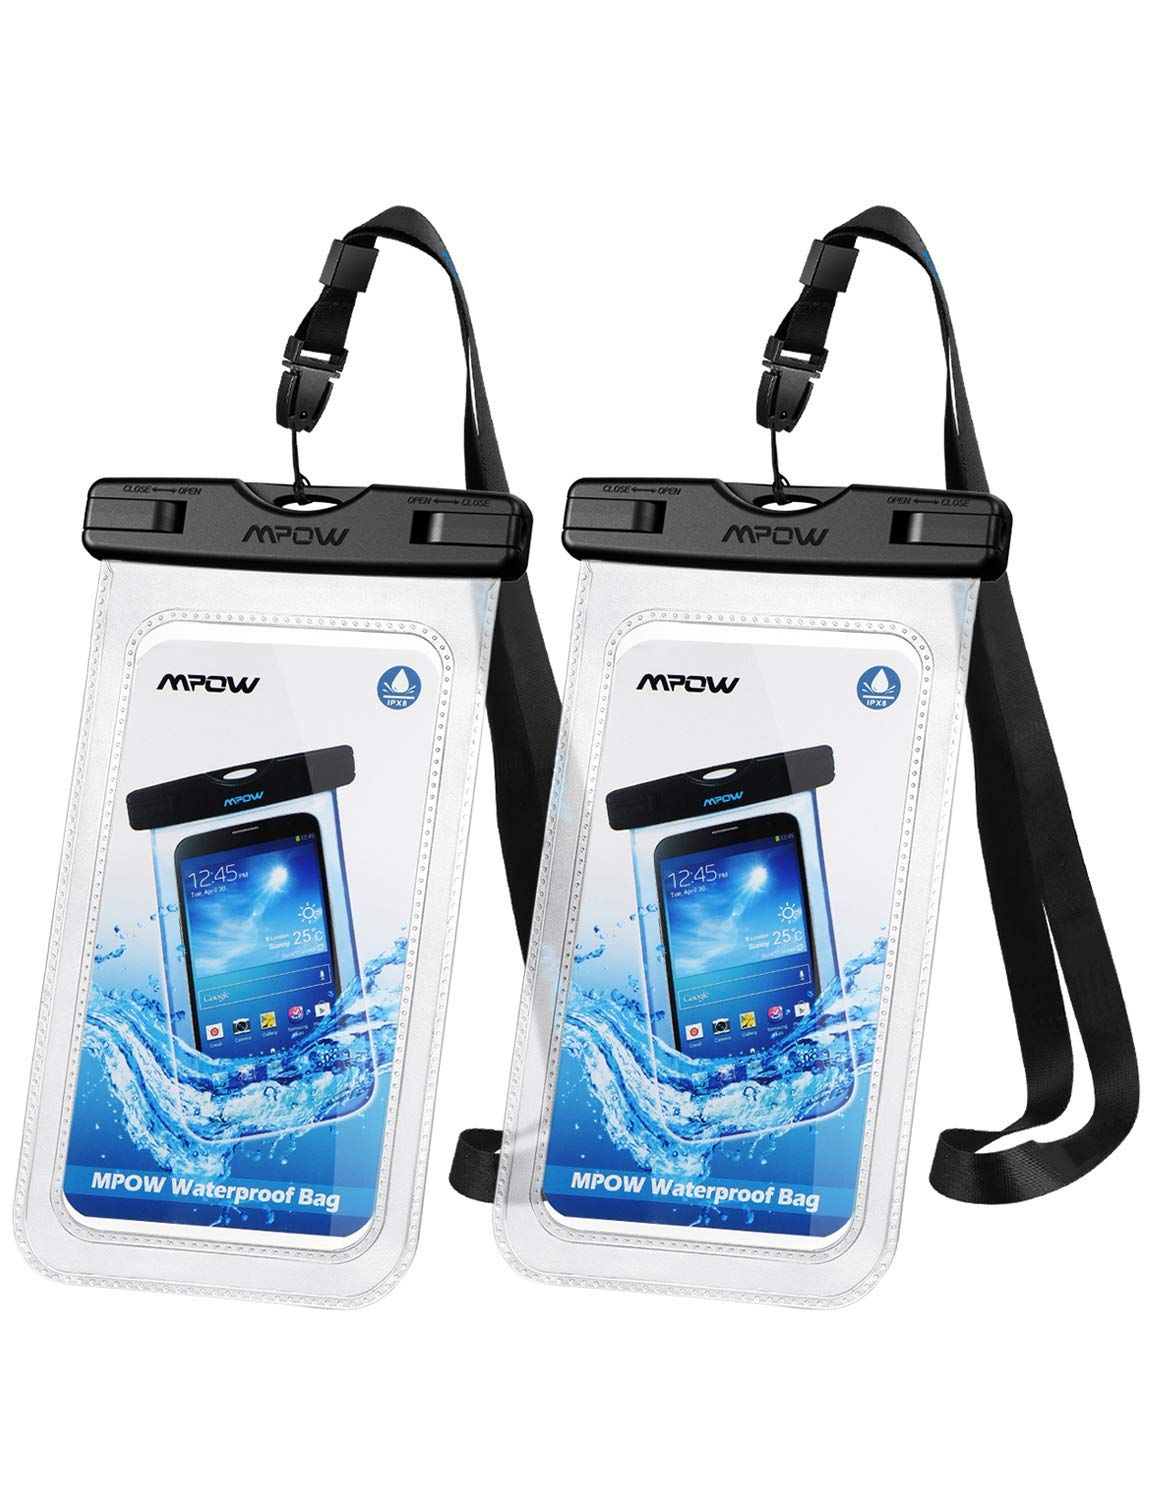 competitive price 9cf2a a7ac5 Amazon.com: Mpow 097 Universal Waterproof Case, IPX8 Waterproof ...